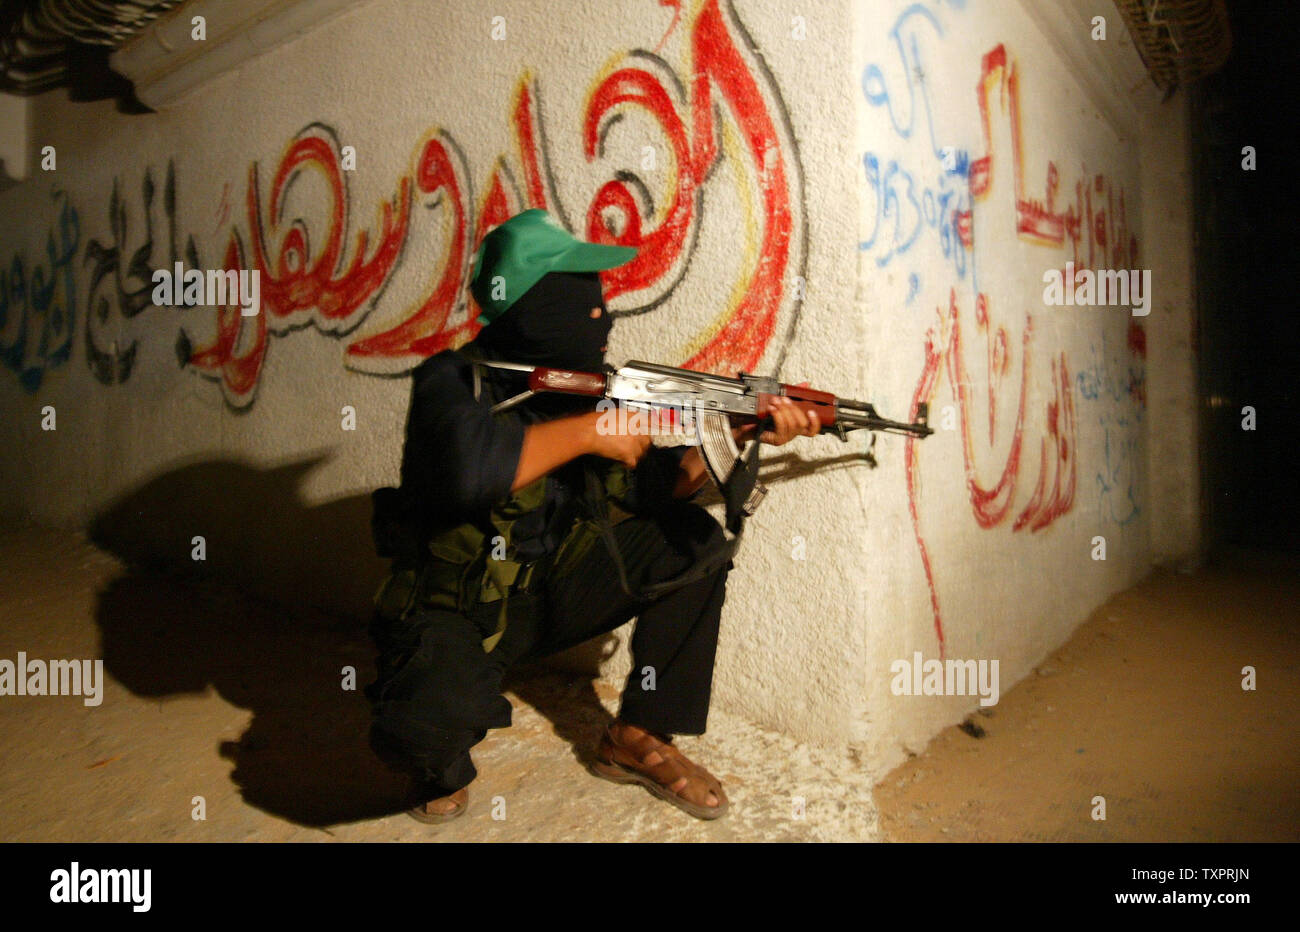 Palestinian members of Hamas' armed wing, the Ezzedine al-Qassam Brigades, are seen training in Rafah, southern Gaza, early on September 14, 2007. Hamas said its security forces in Gaza have gone on high alert ahead of an anticipated large-scale Israeli offensive in the Islamist-controlled Palestinian territory.(UPI Photo/Ismael Mohamad) - Stock Image